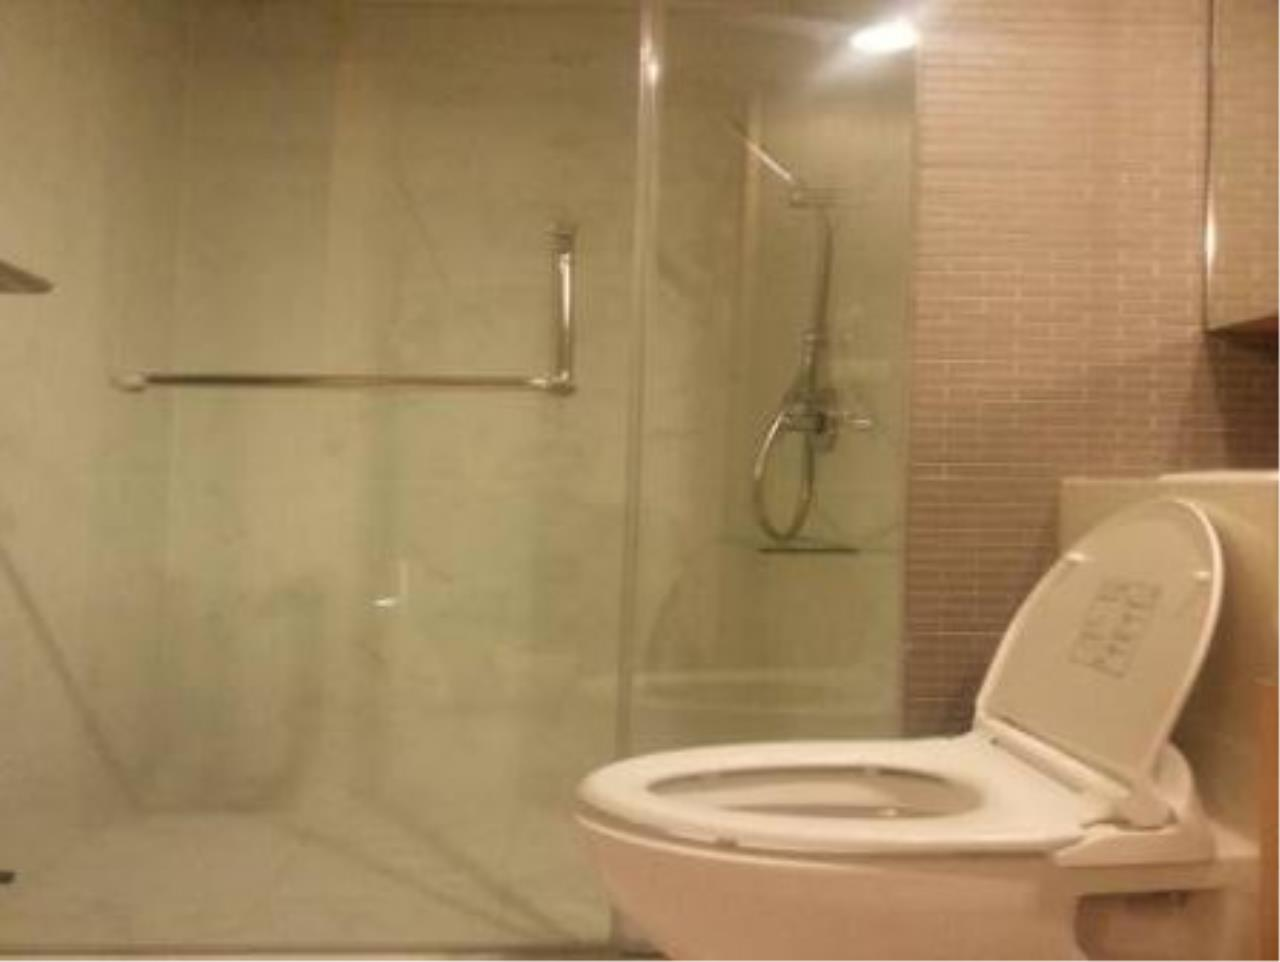 BKK Condos Agency's Modern style one bedroom condo for rent at Siamese Gioia 4